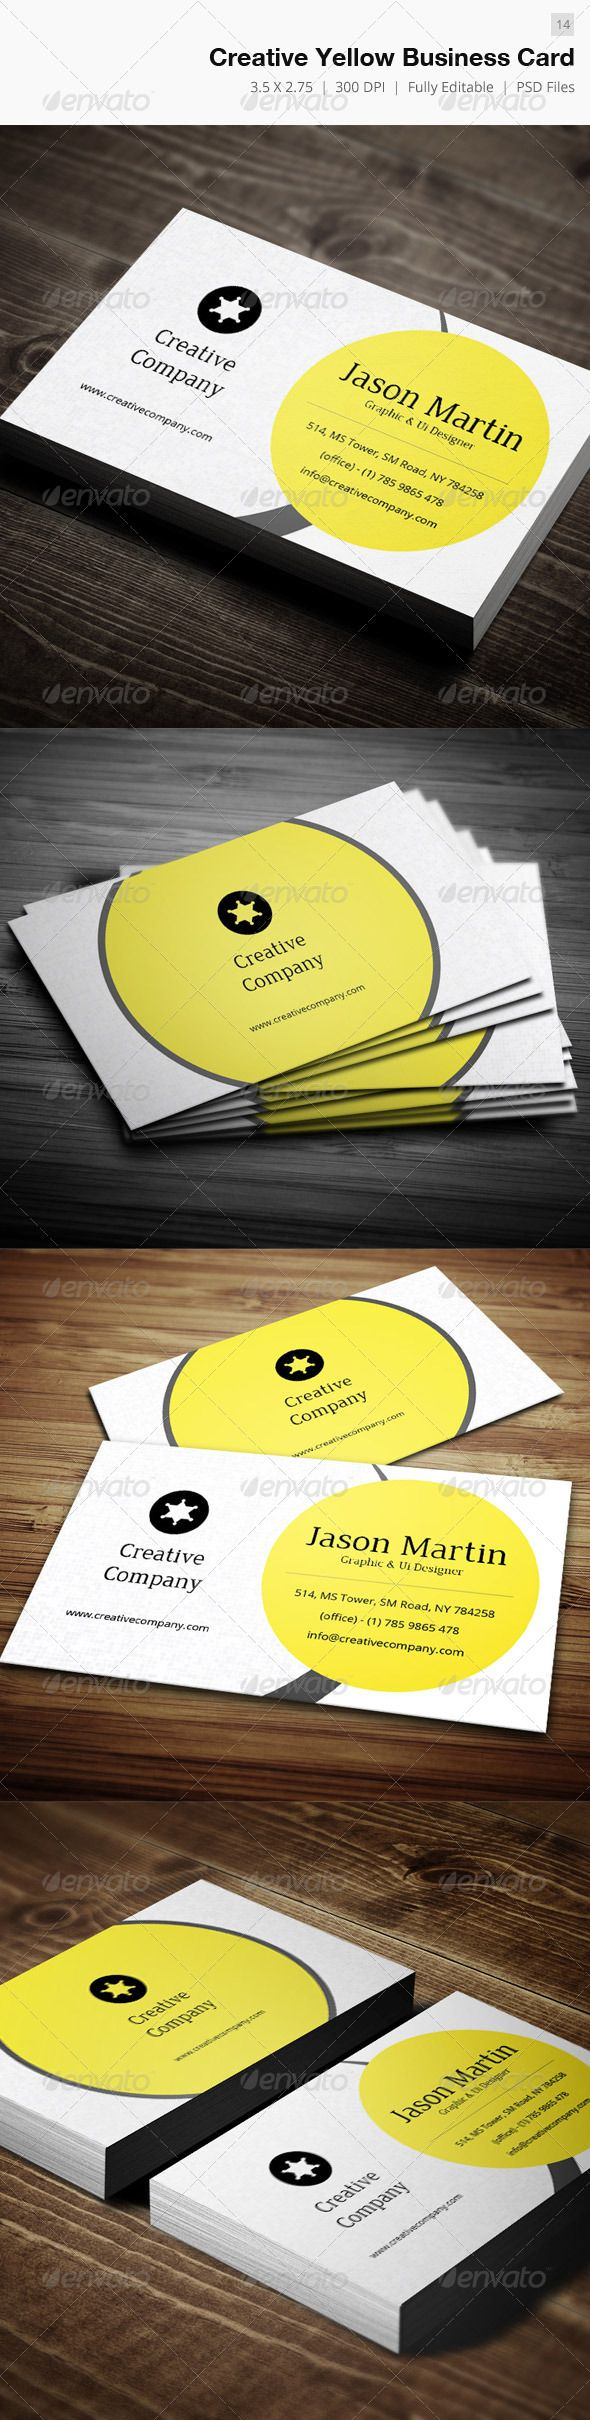 974 best business card template design images on pinterest creative yellow business card 14 alramifo Images